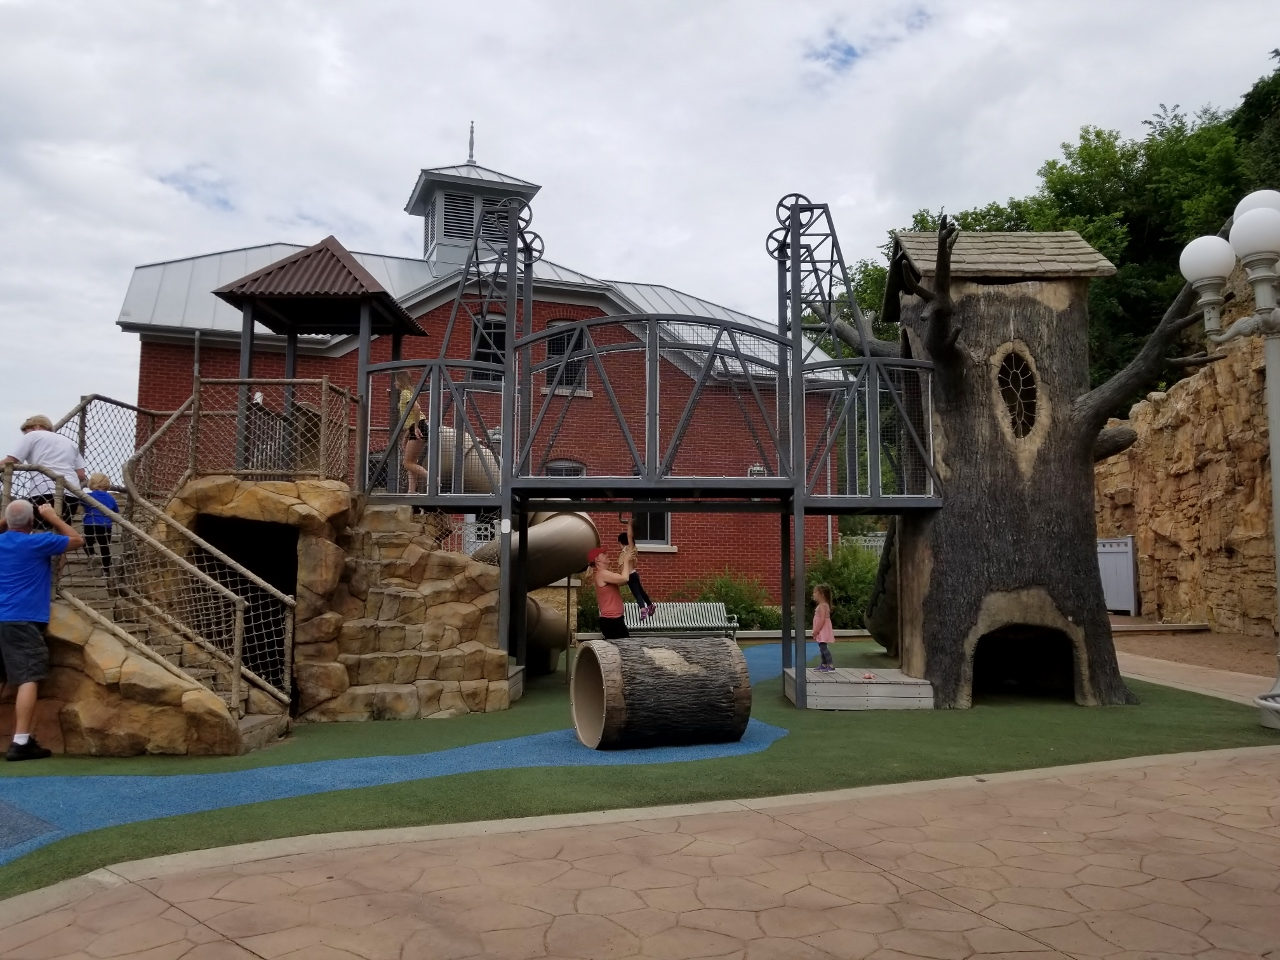 Older kids play area at teddy bear park